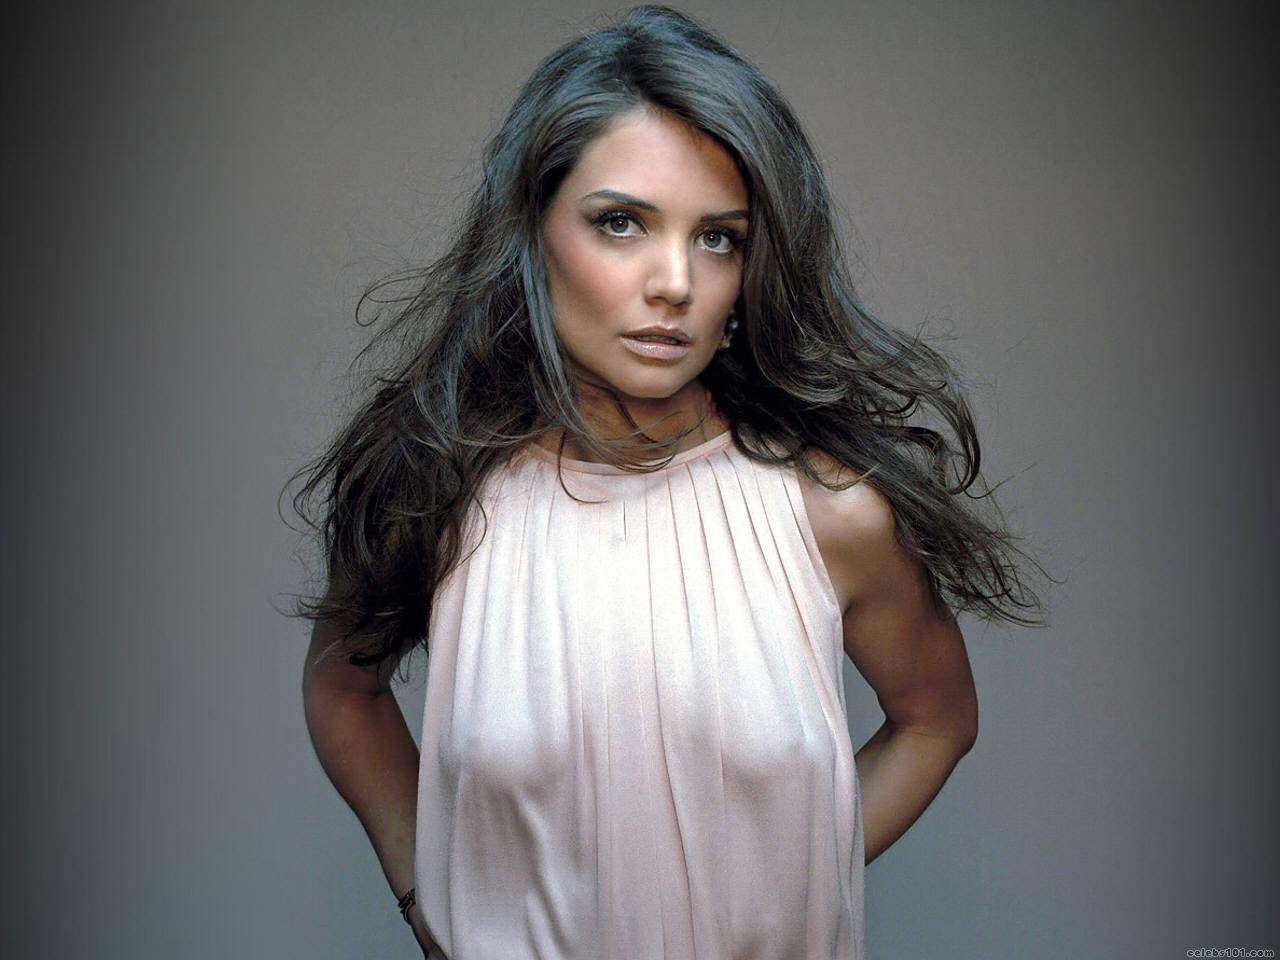 http://www.celebs101.com/wallpapers/Katie_Holmes/136069/holmes991280x960.jpg